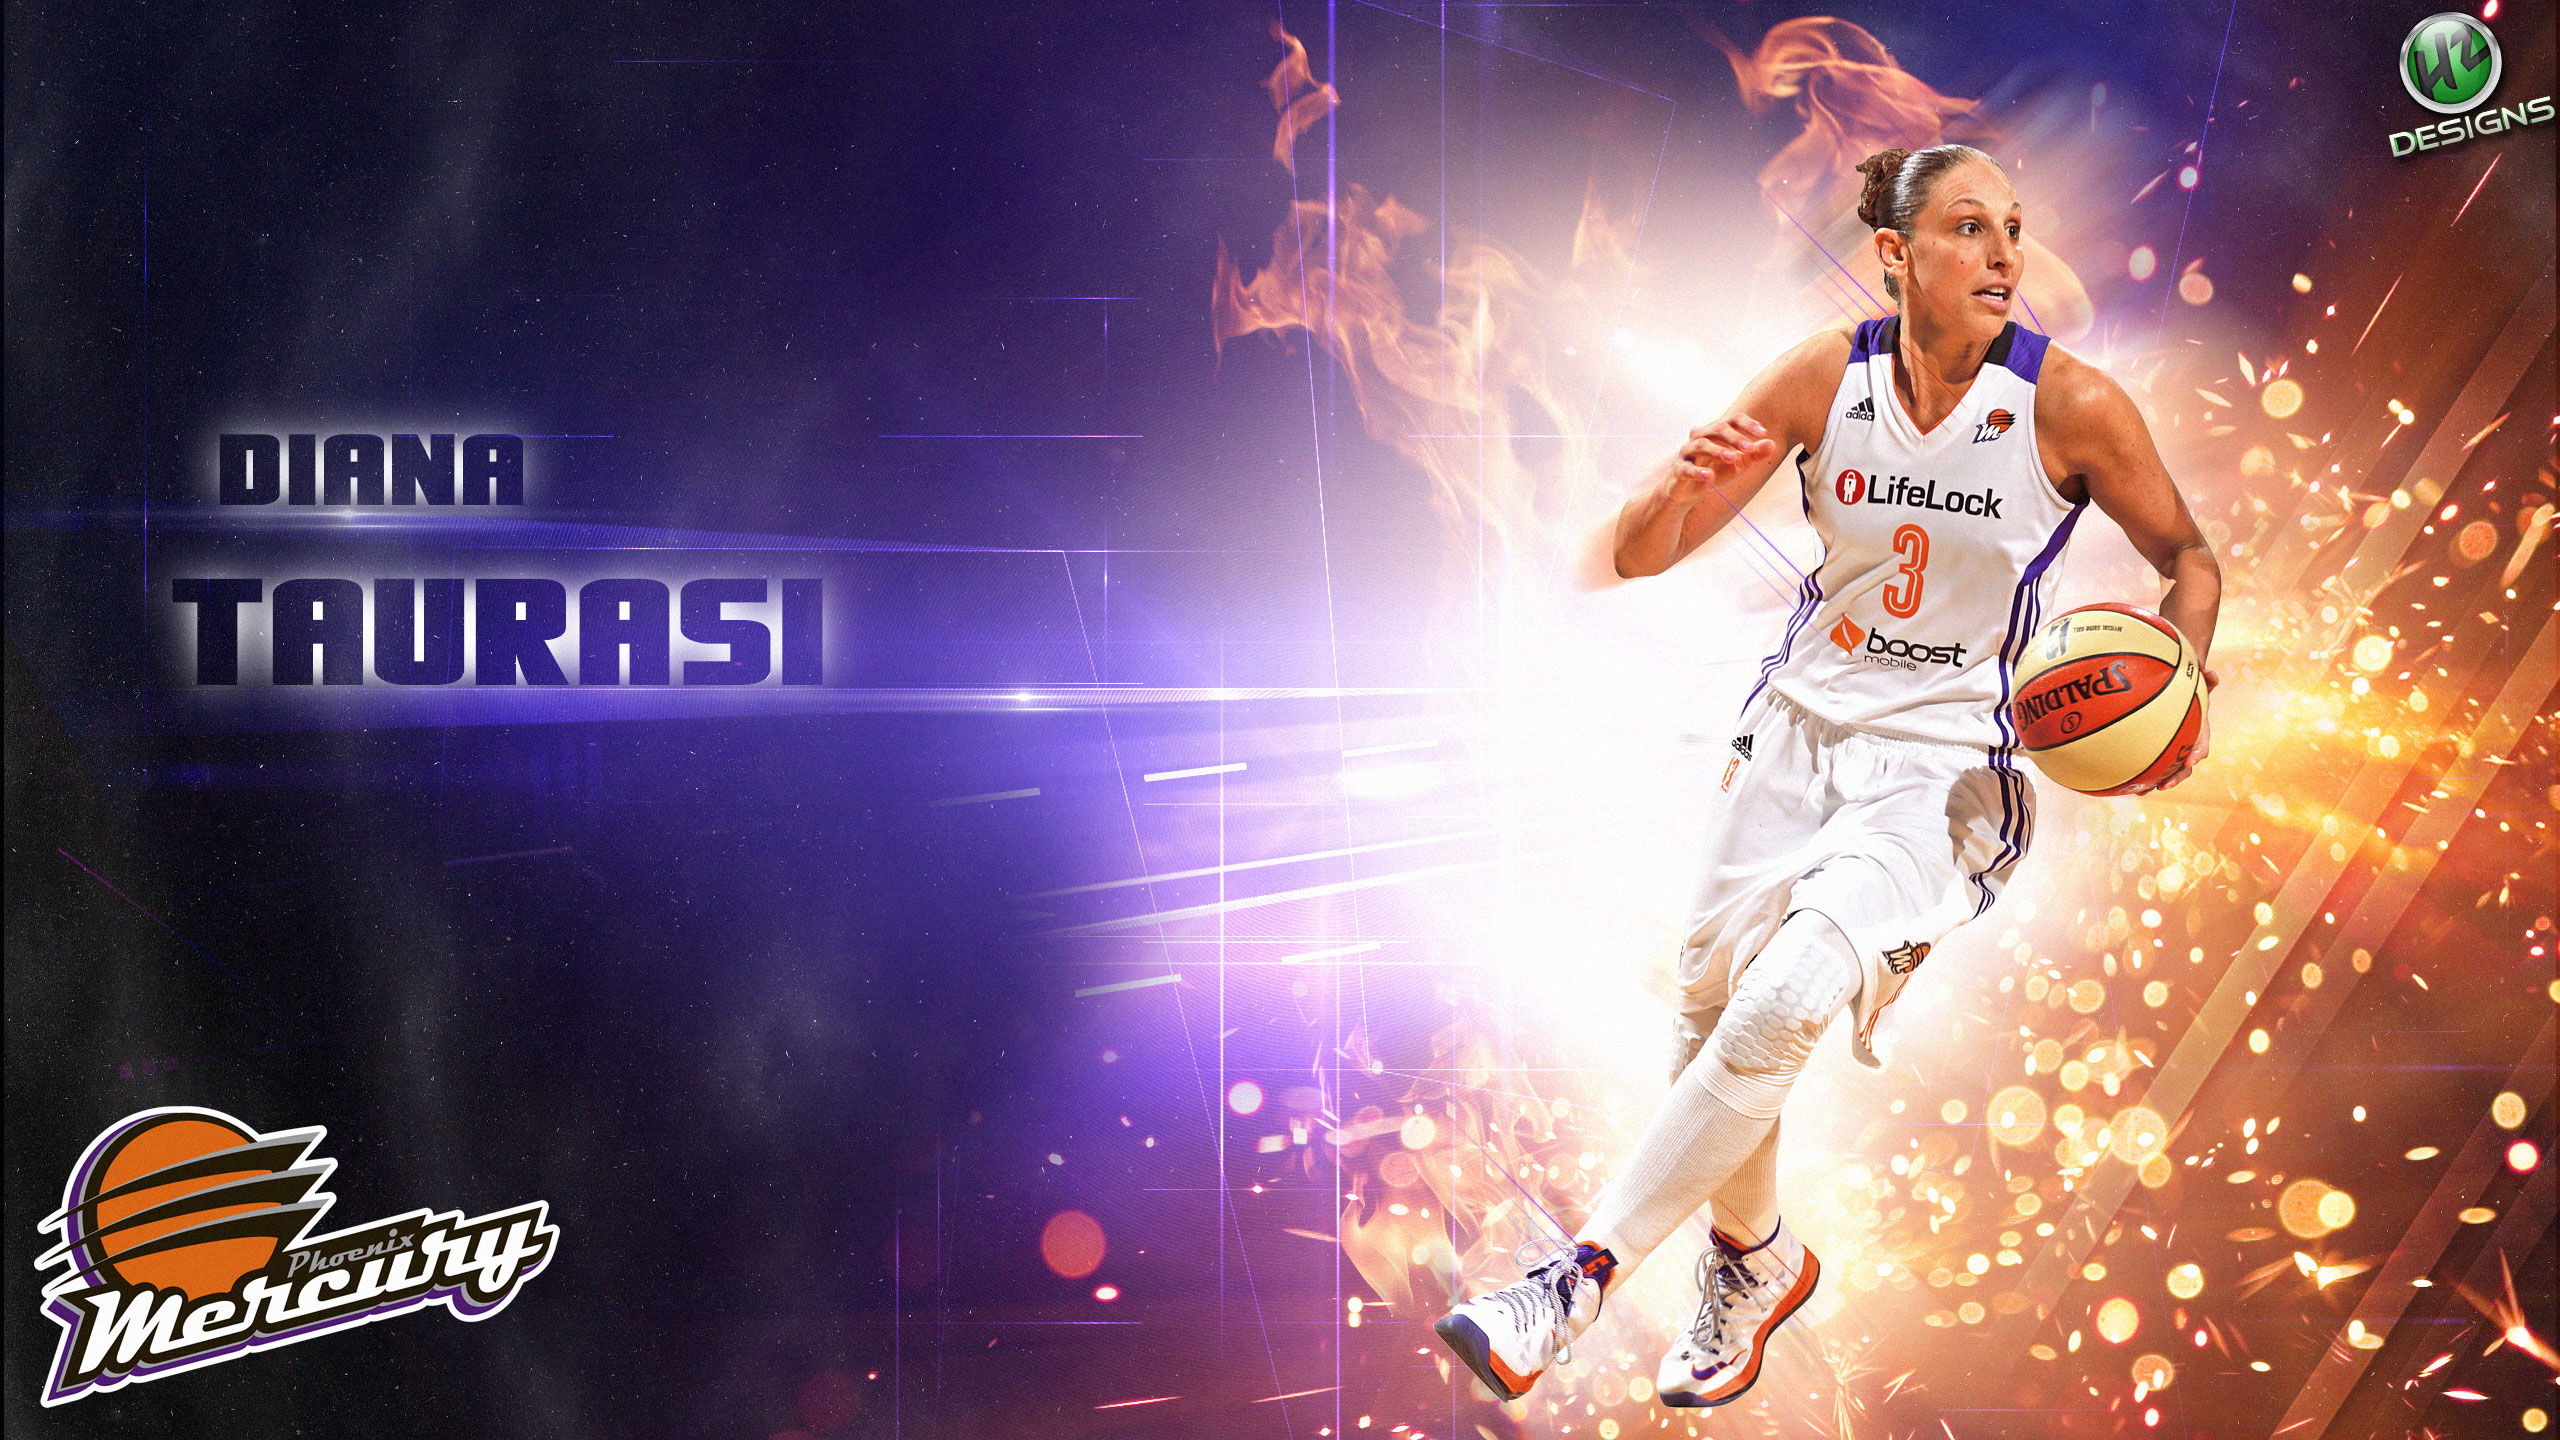 Candace parker candace parker wallpaper on quotesfab adidas adizero candace parker candace parker wallpaper on quotesfab adidas adizero crazy light candace parker olympic photo 2560x1440 voltagebd Gallery